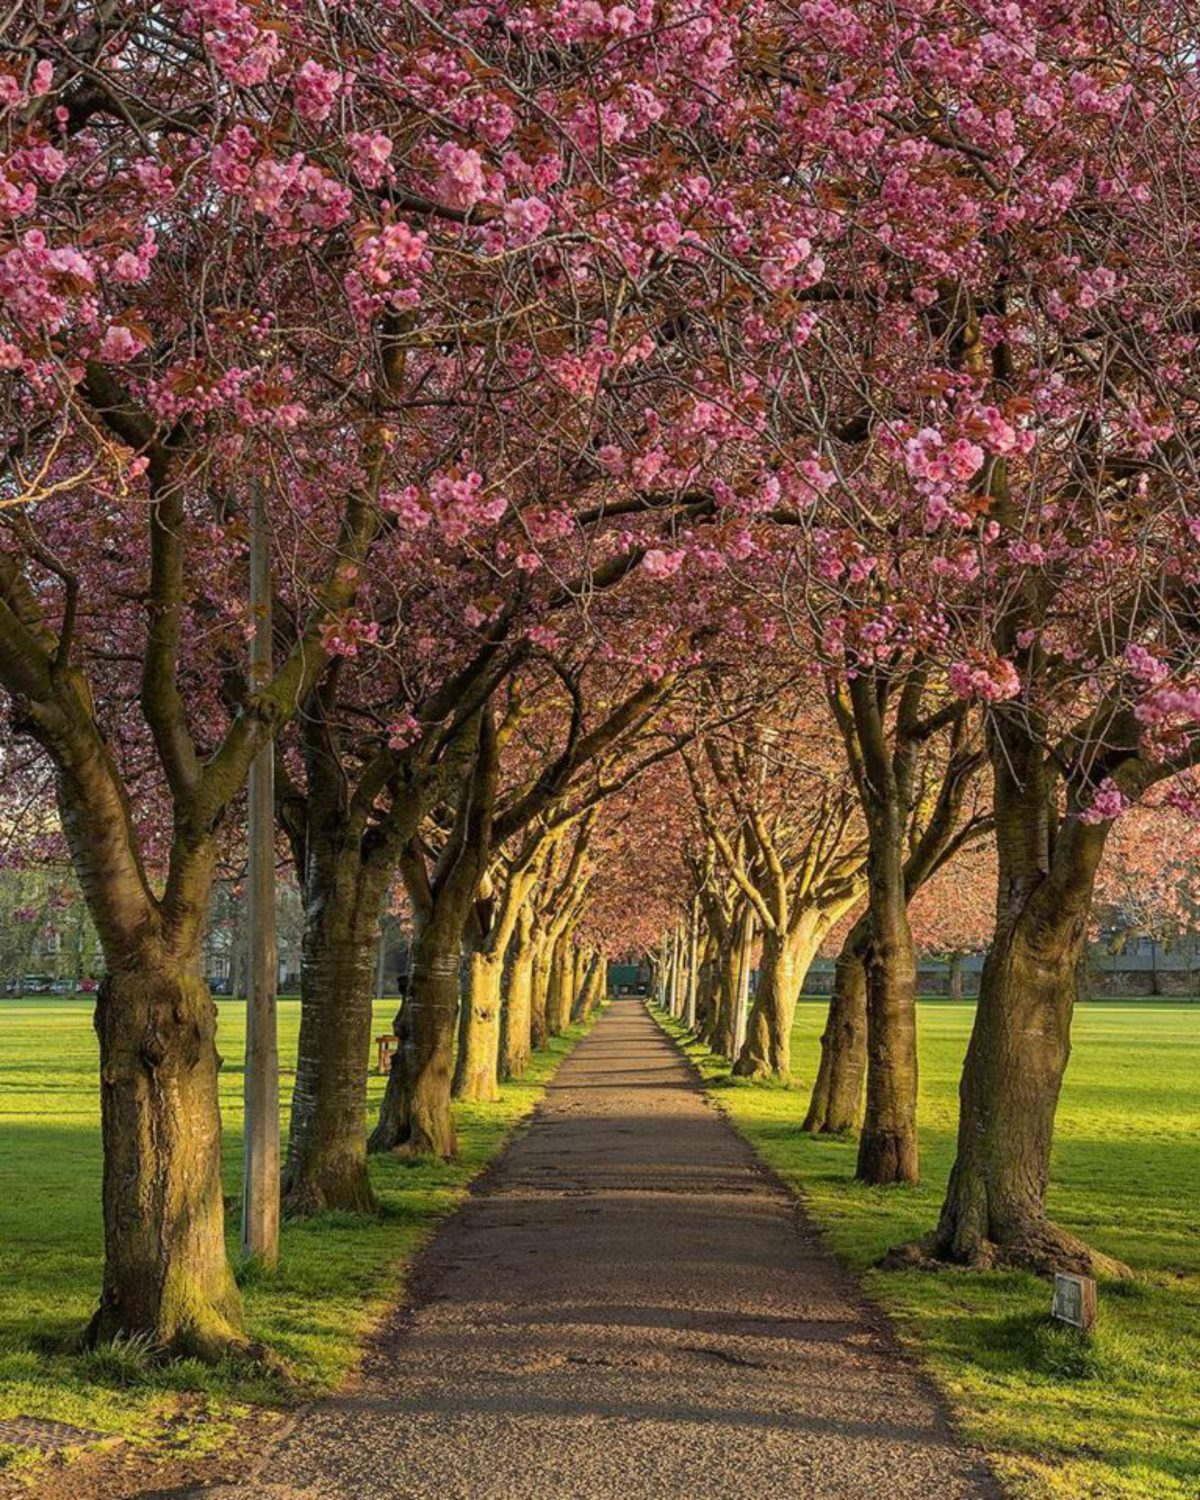 33 Stunning Photos That Prove That Spring In Scotland Is